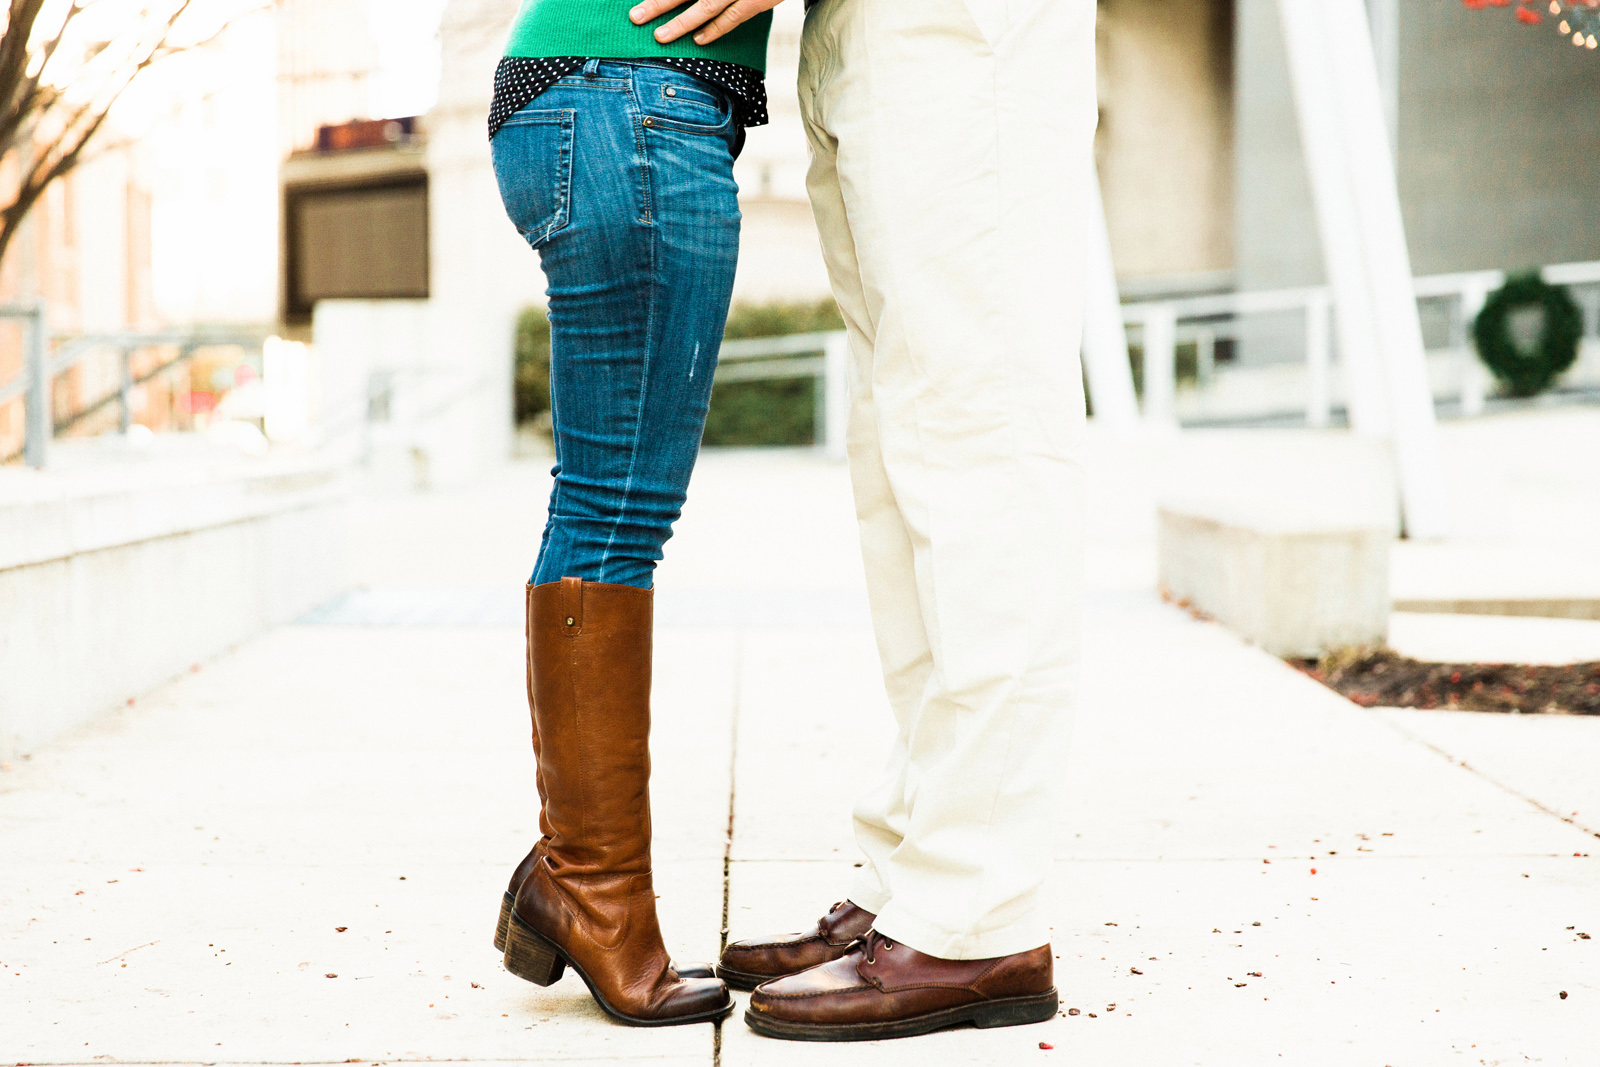 Oldani-Photography-St-Louis-Downtown-Engagement-Session_20141226_154305.jpg